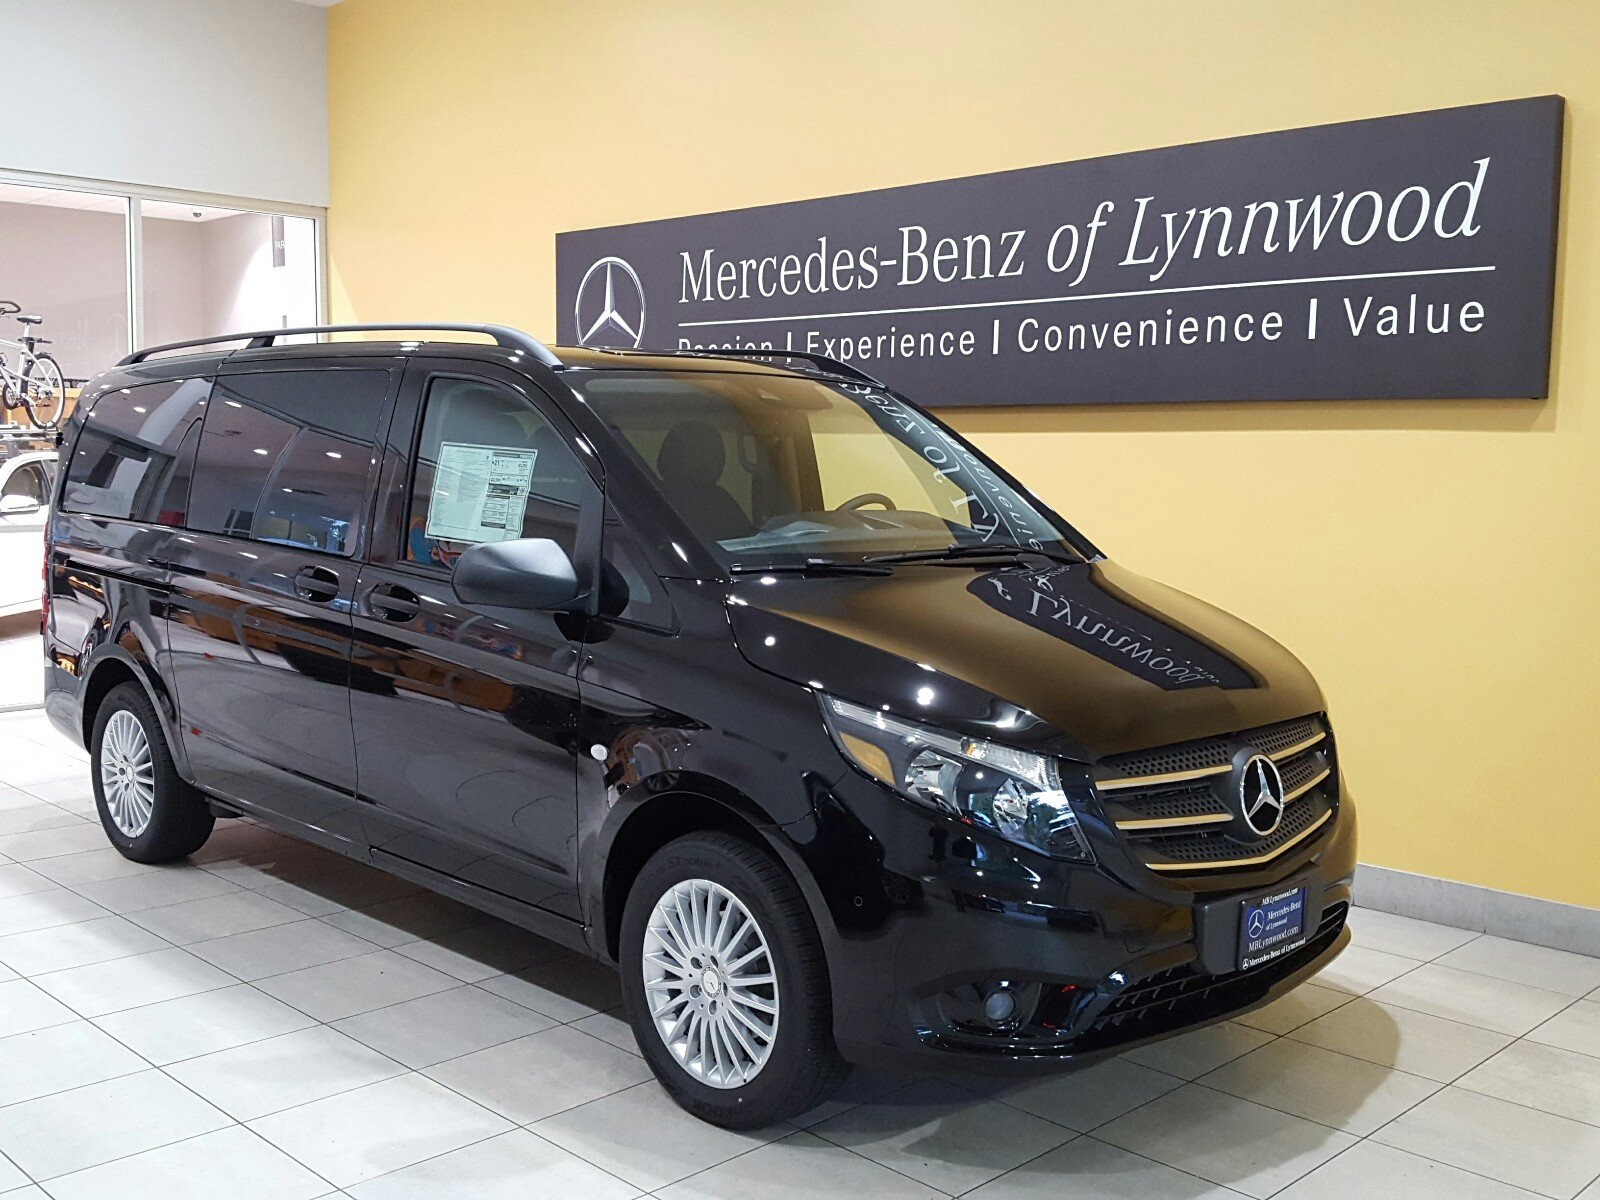 New 2018 mercedes benz metris passenger van mini van for 2018 mercedes benz metris redesign